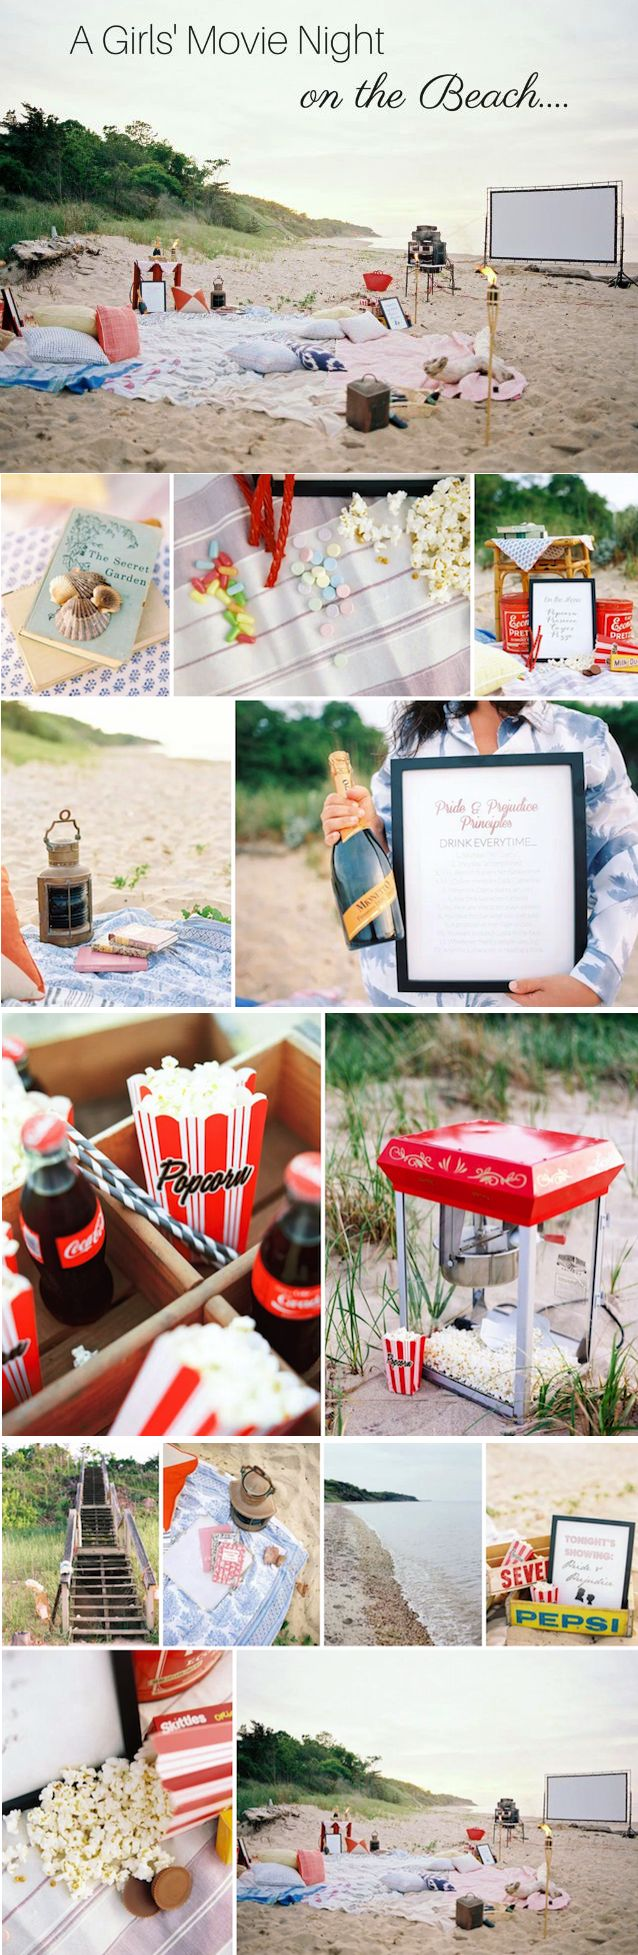 Swooning over this Movie Night On the Beach Bachelorette Party idea! Absolutely genius! | Photography by Christina Zen, Rentals by Octavia & Brown, Styling by Krista Roser and Roey Mizrahi Events